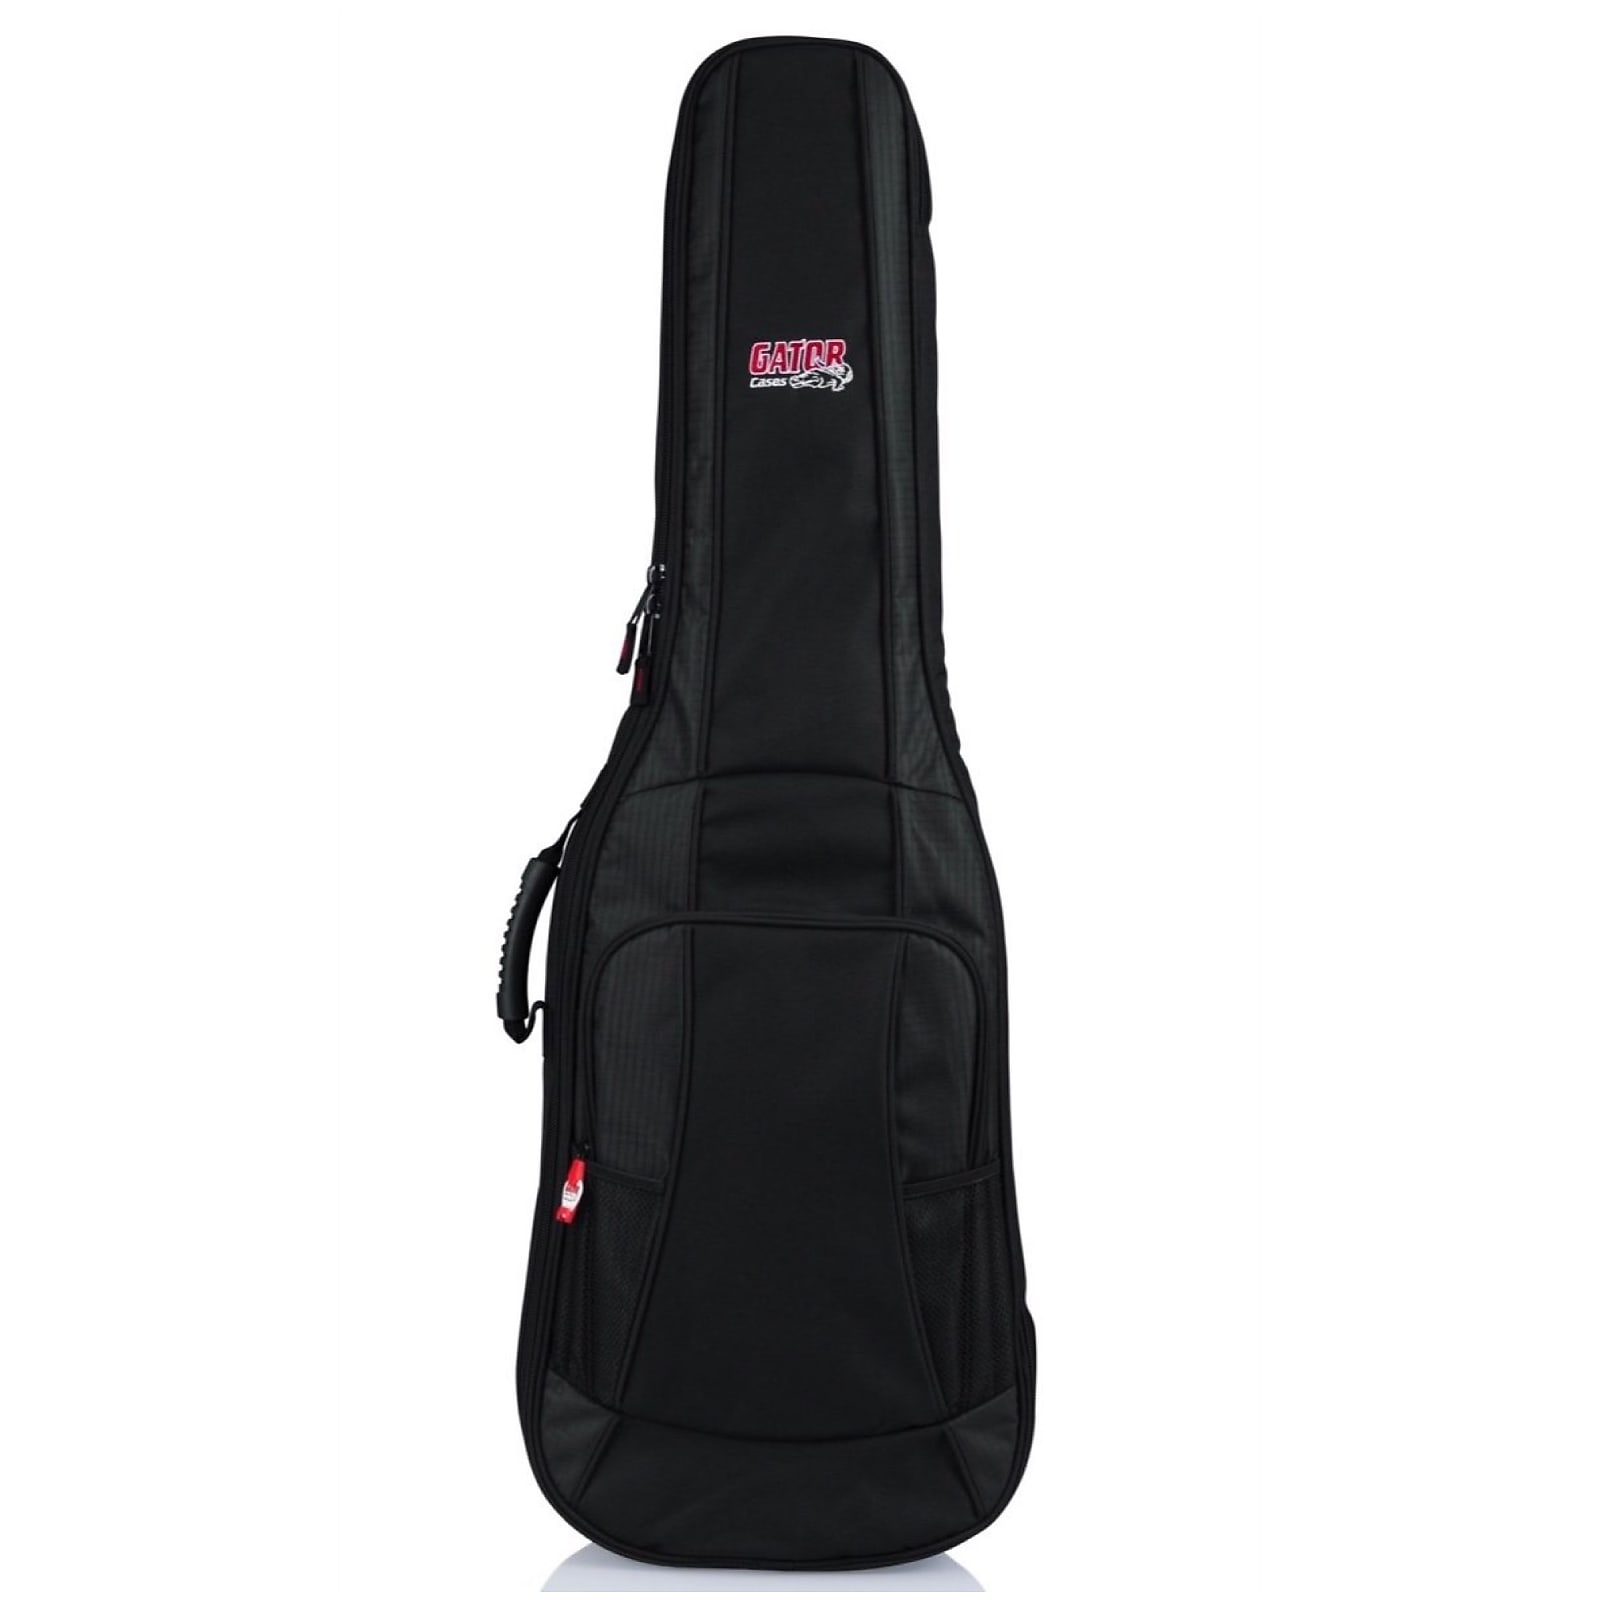 Authorized Dealer! New Electric Guitar Gator GBE-Electric Gig Bag